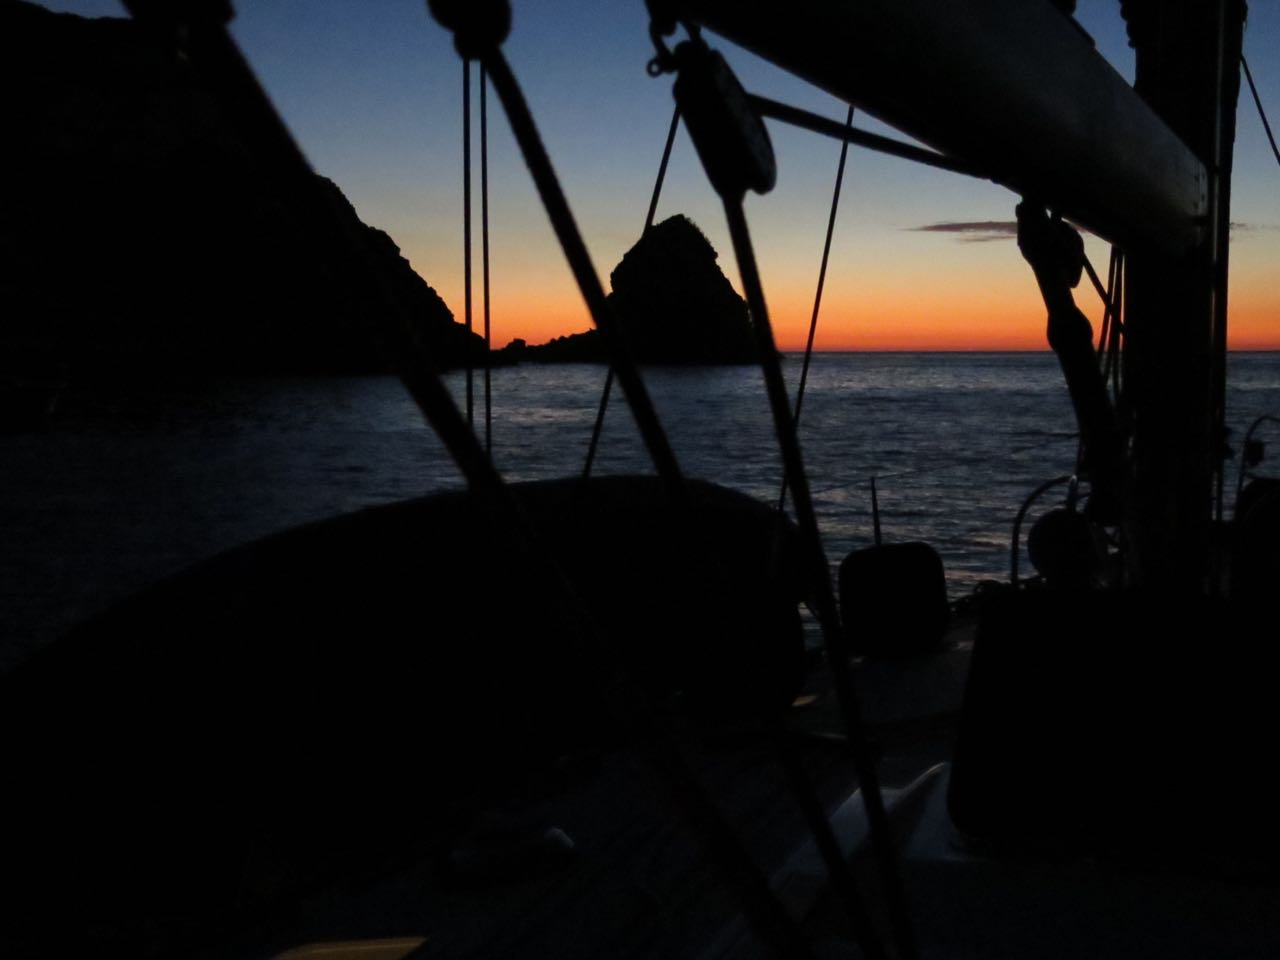 Sail to Potato Harbor on Santa Cruz Island with Capt. Dan Ryder and Sail Channel Islands